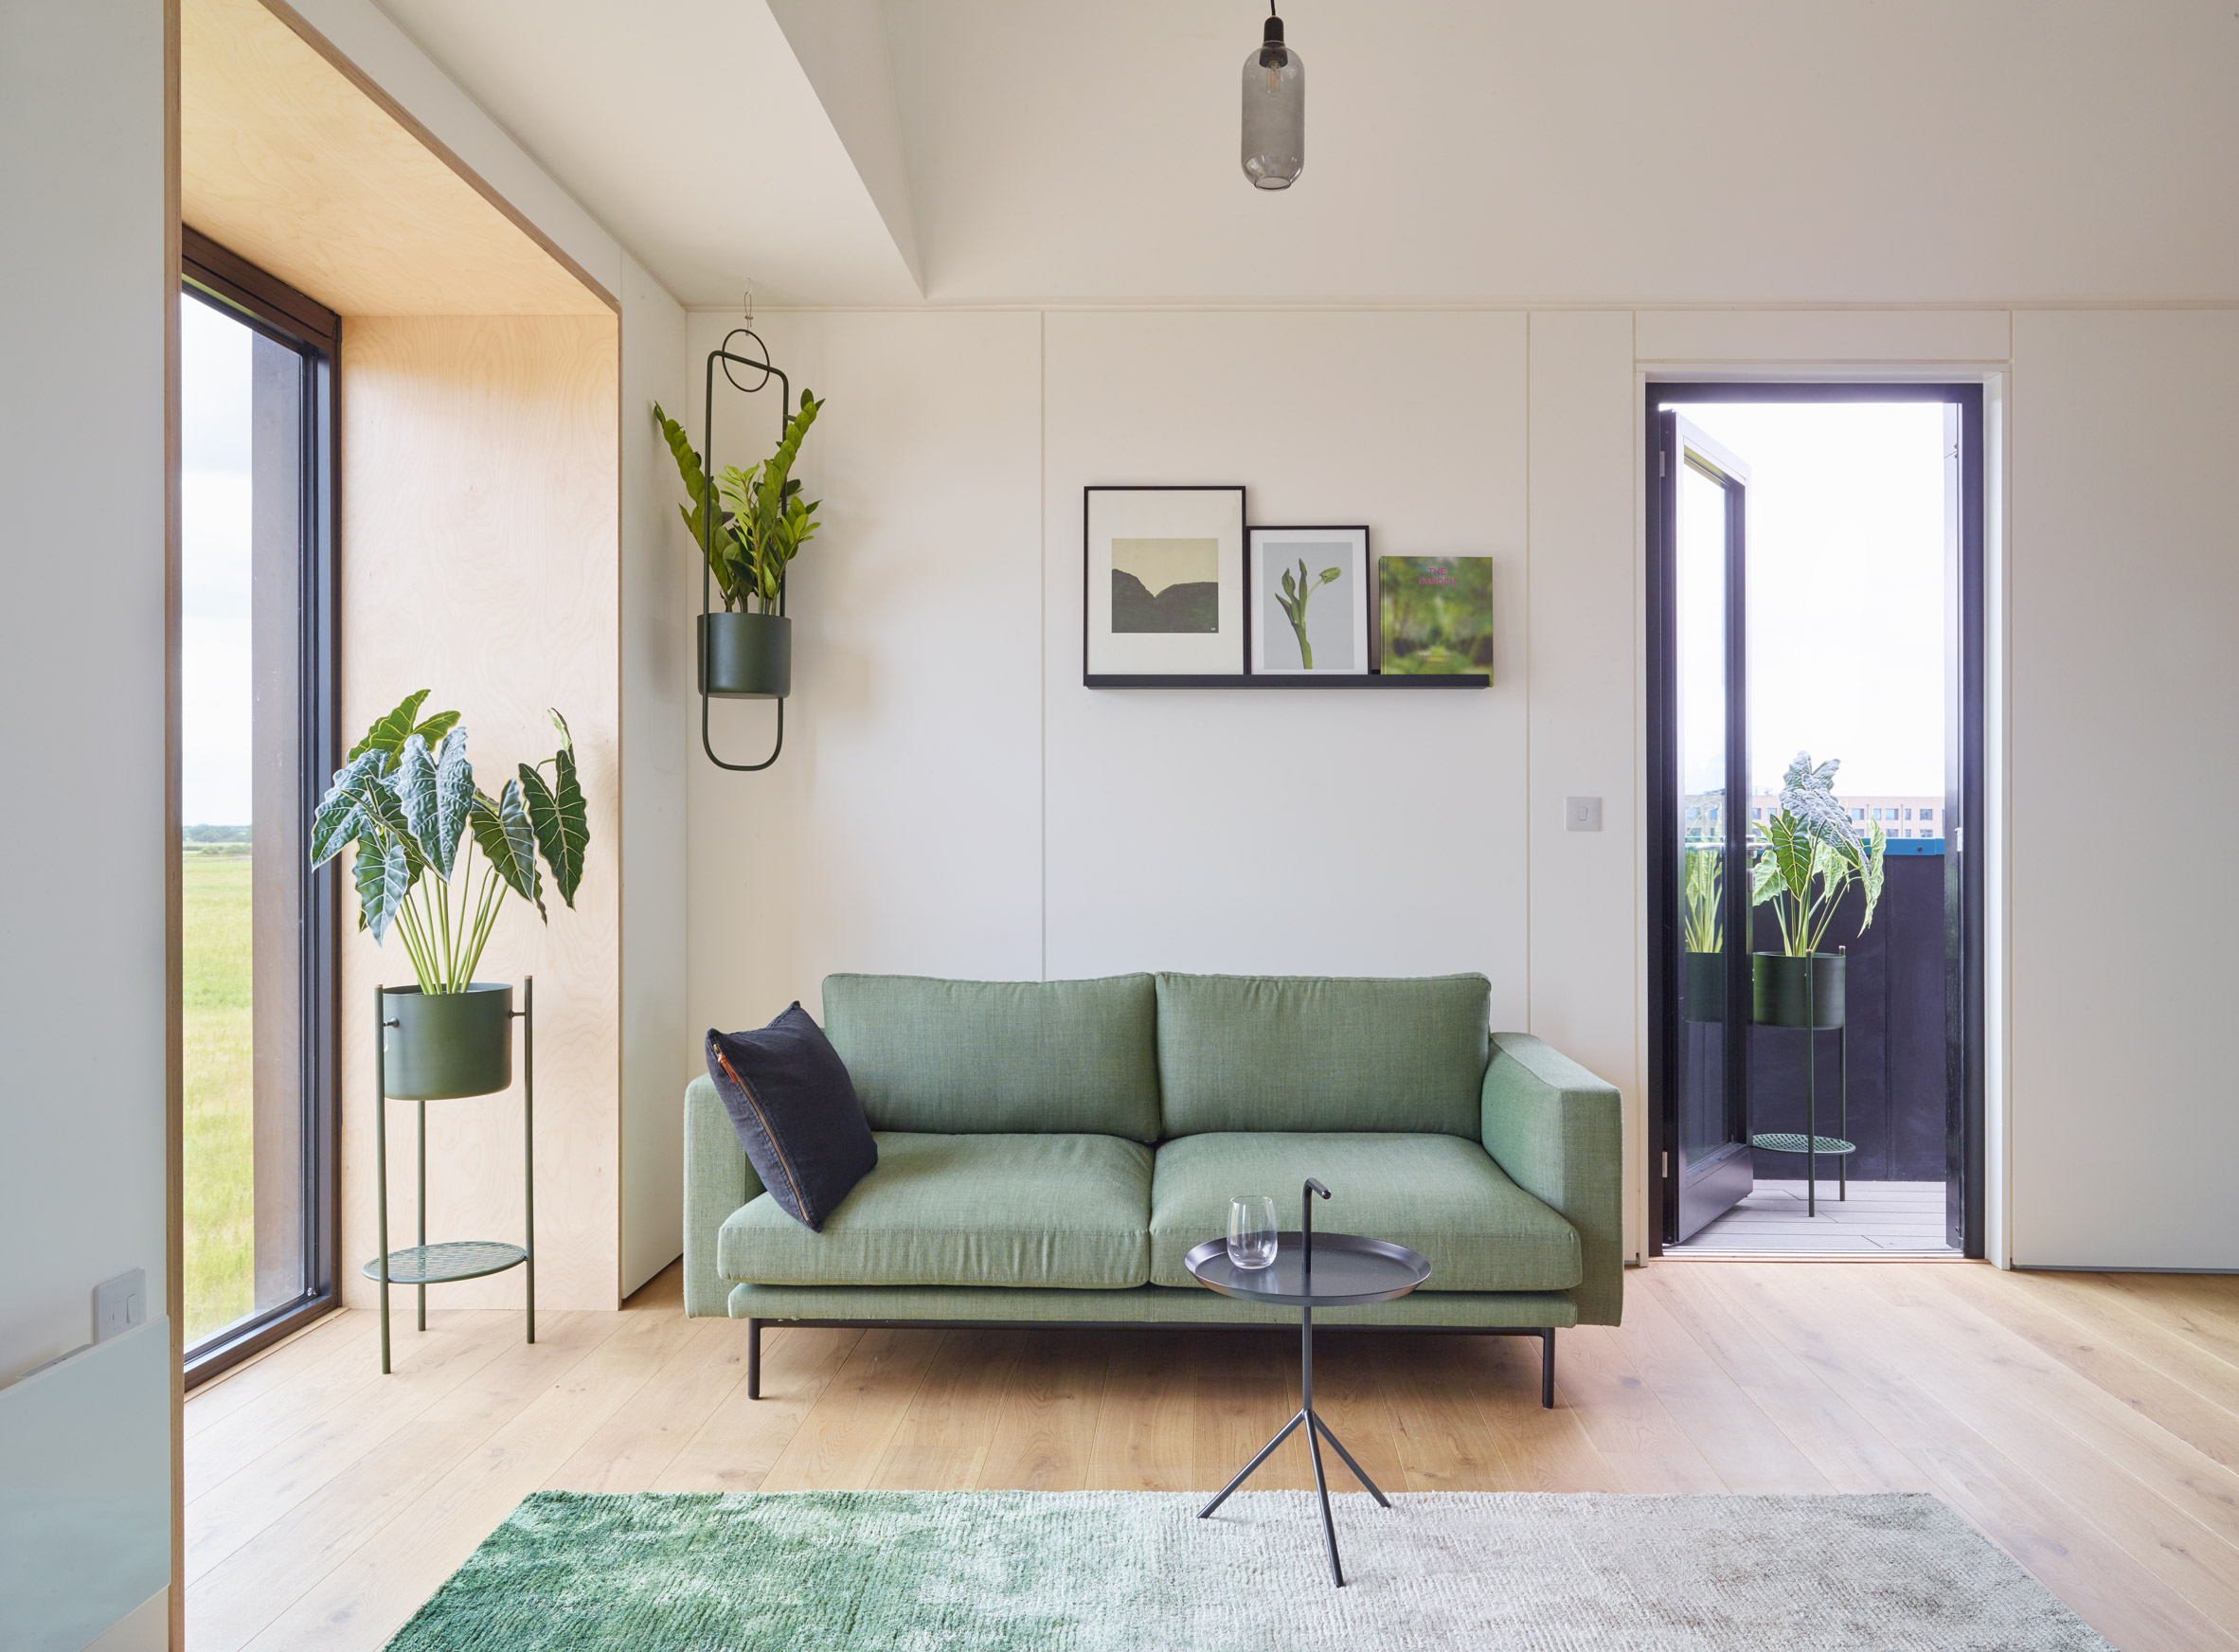 Town House show home living room at Inholm by House by Urban Splash